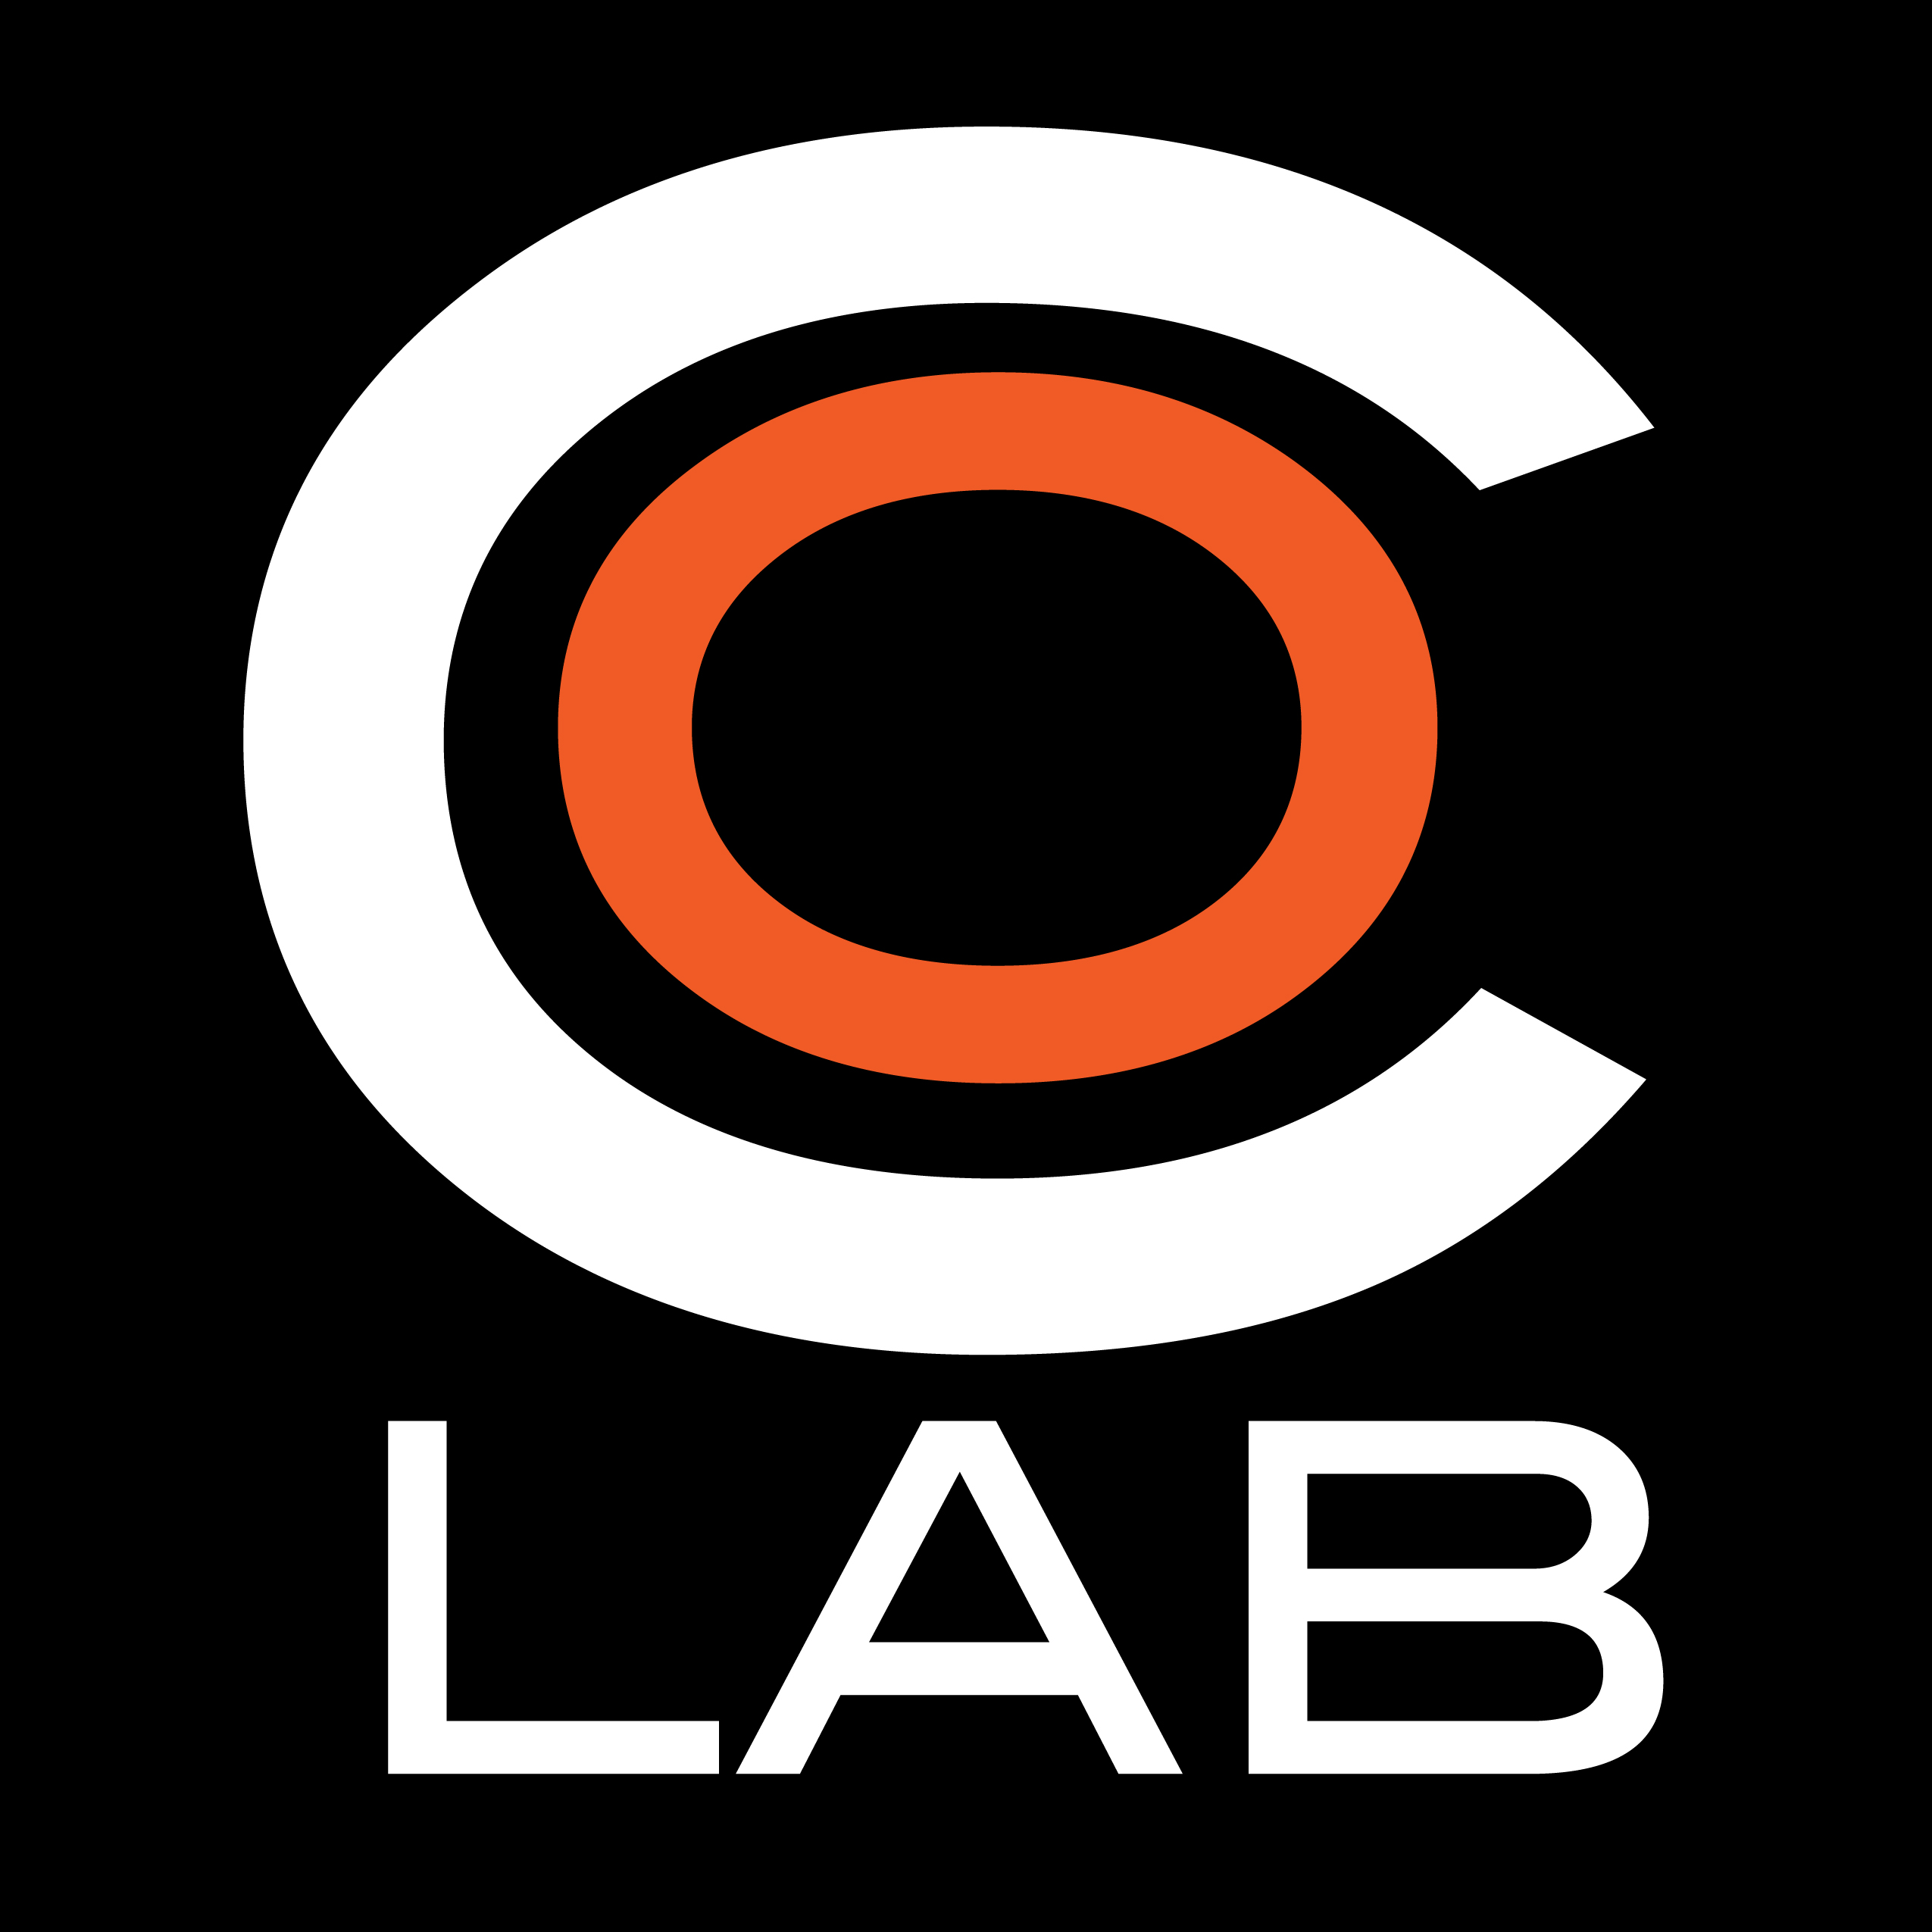 CoLAB stacked logo